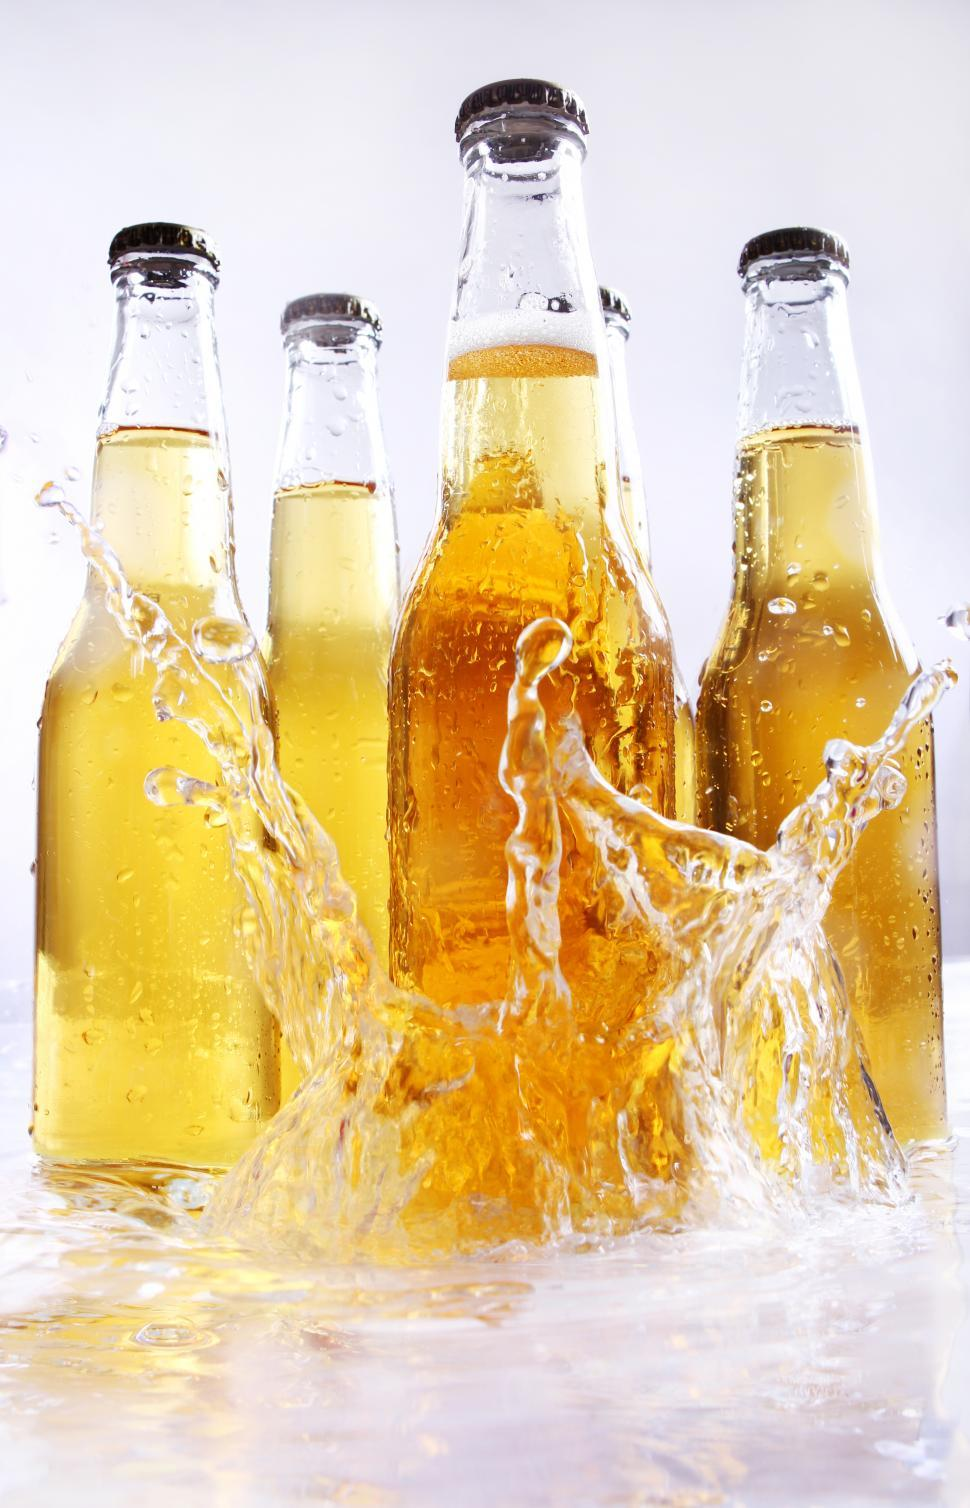 Download Free Stock HD Photo of Bottles of beer with water splashes Online